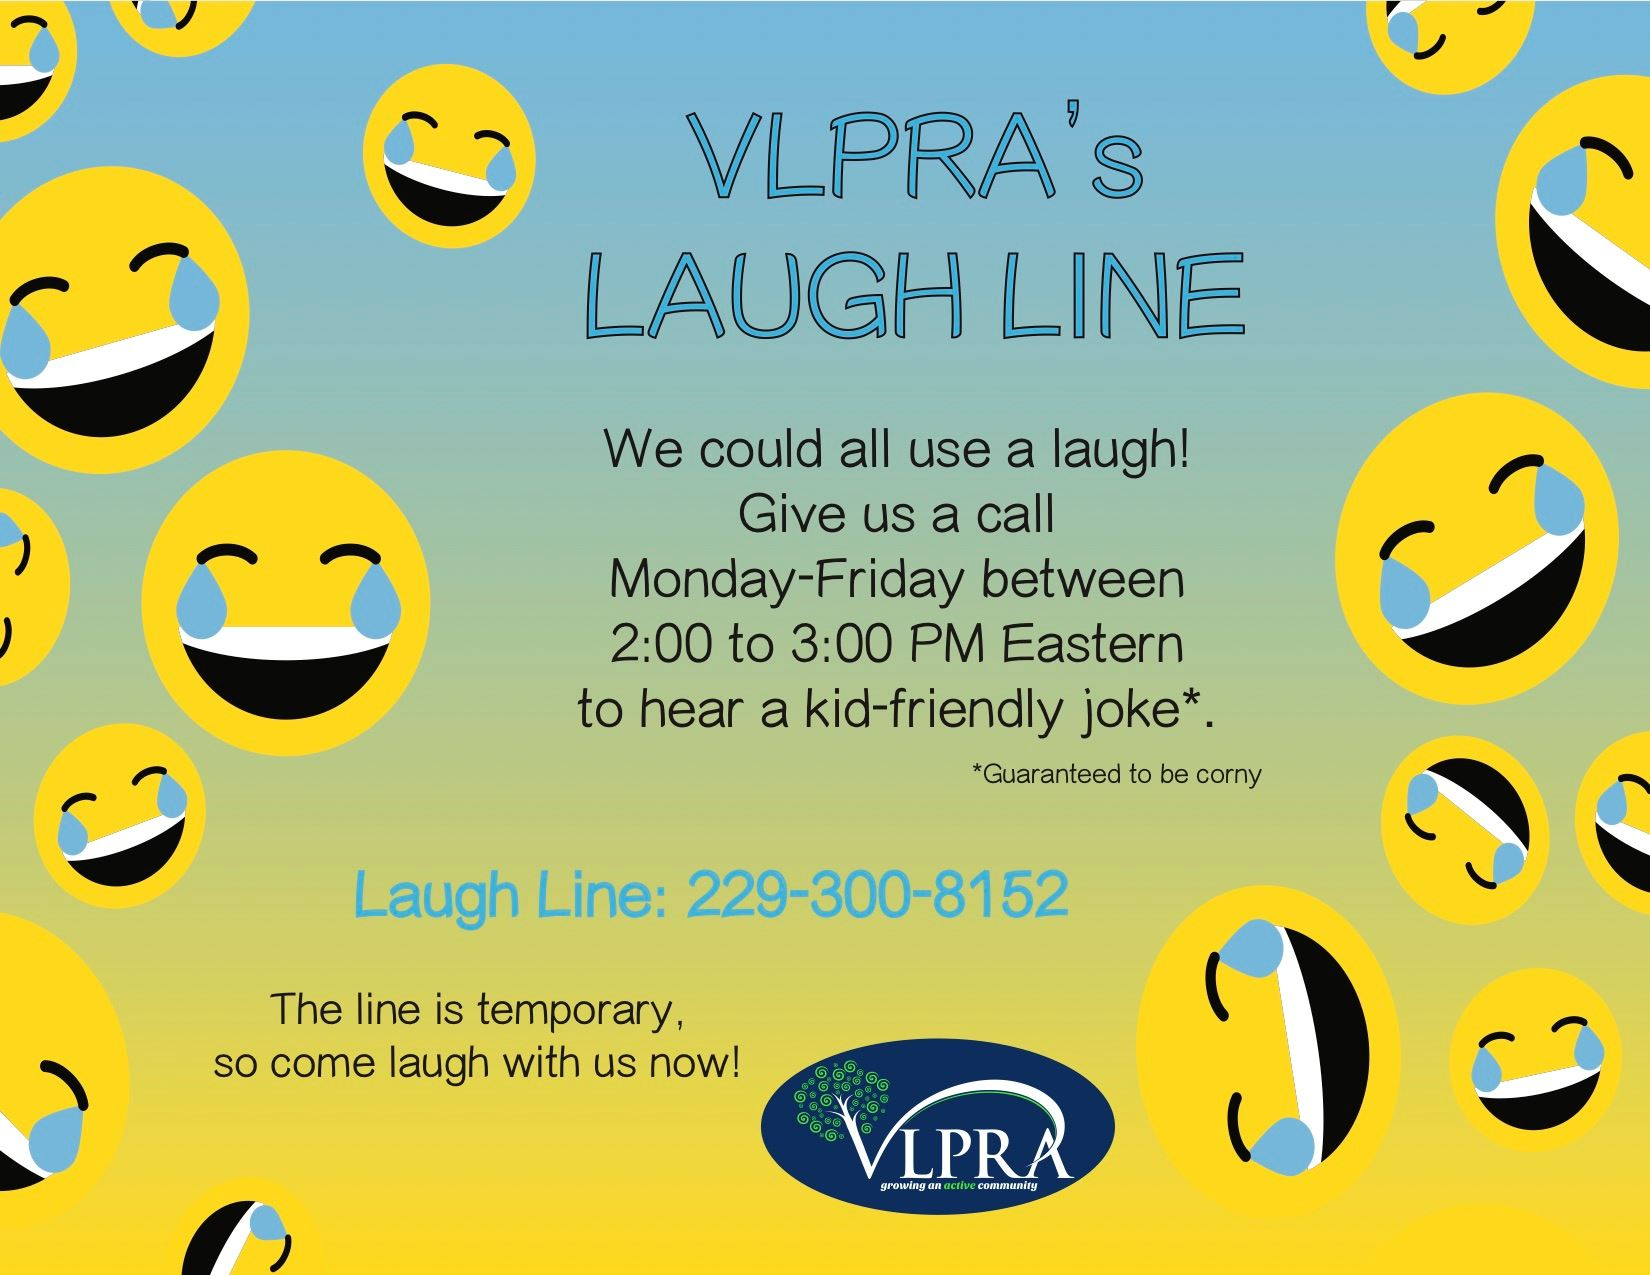 A flyer for VLPRA's laugh line, open 2-3 pm Monday through Friday